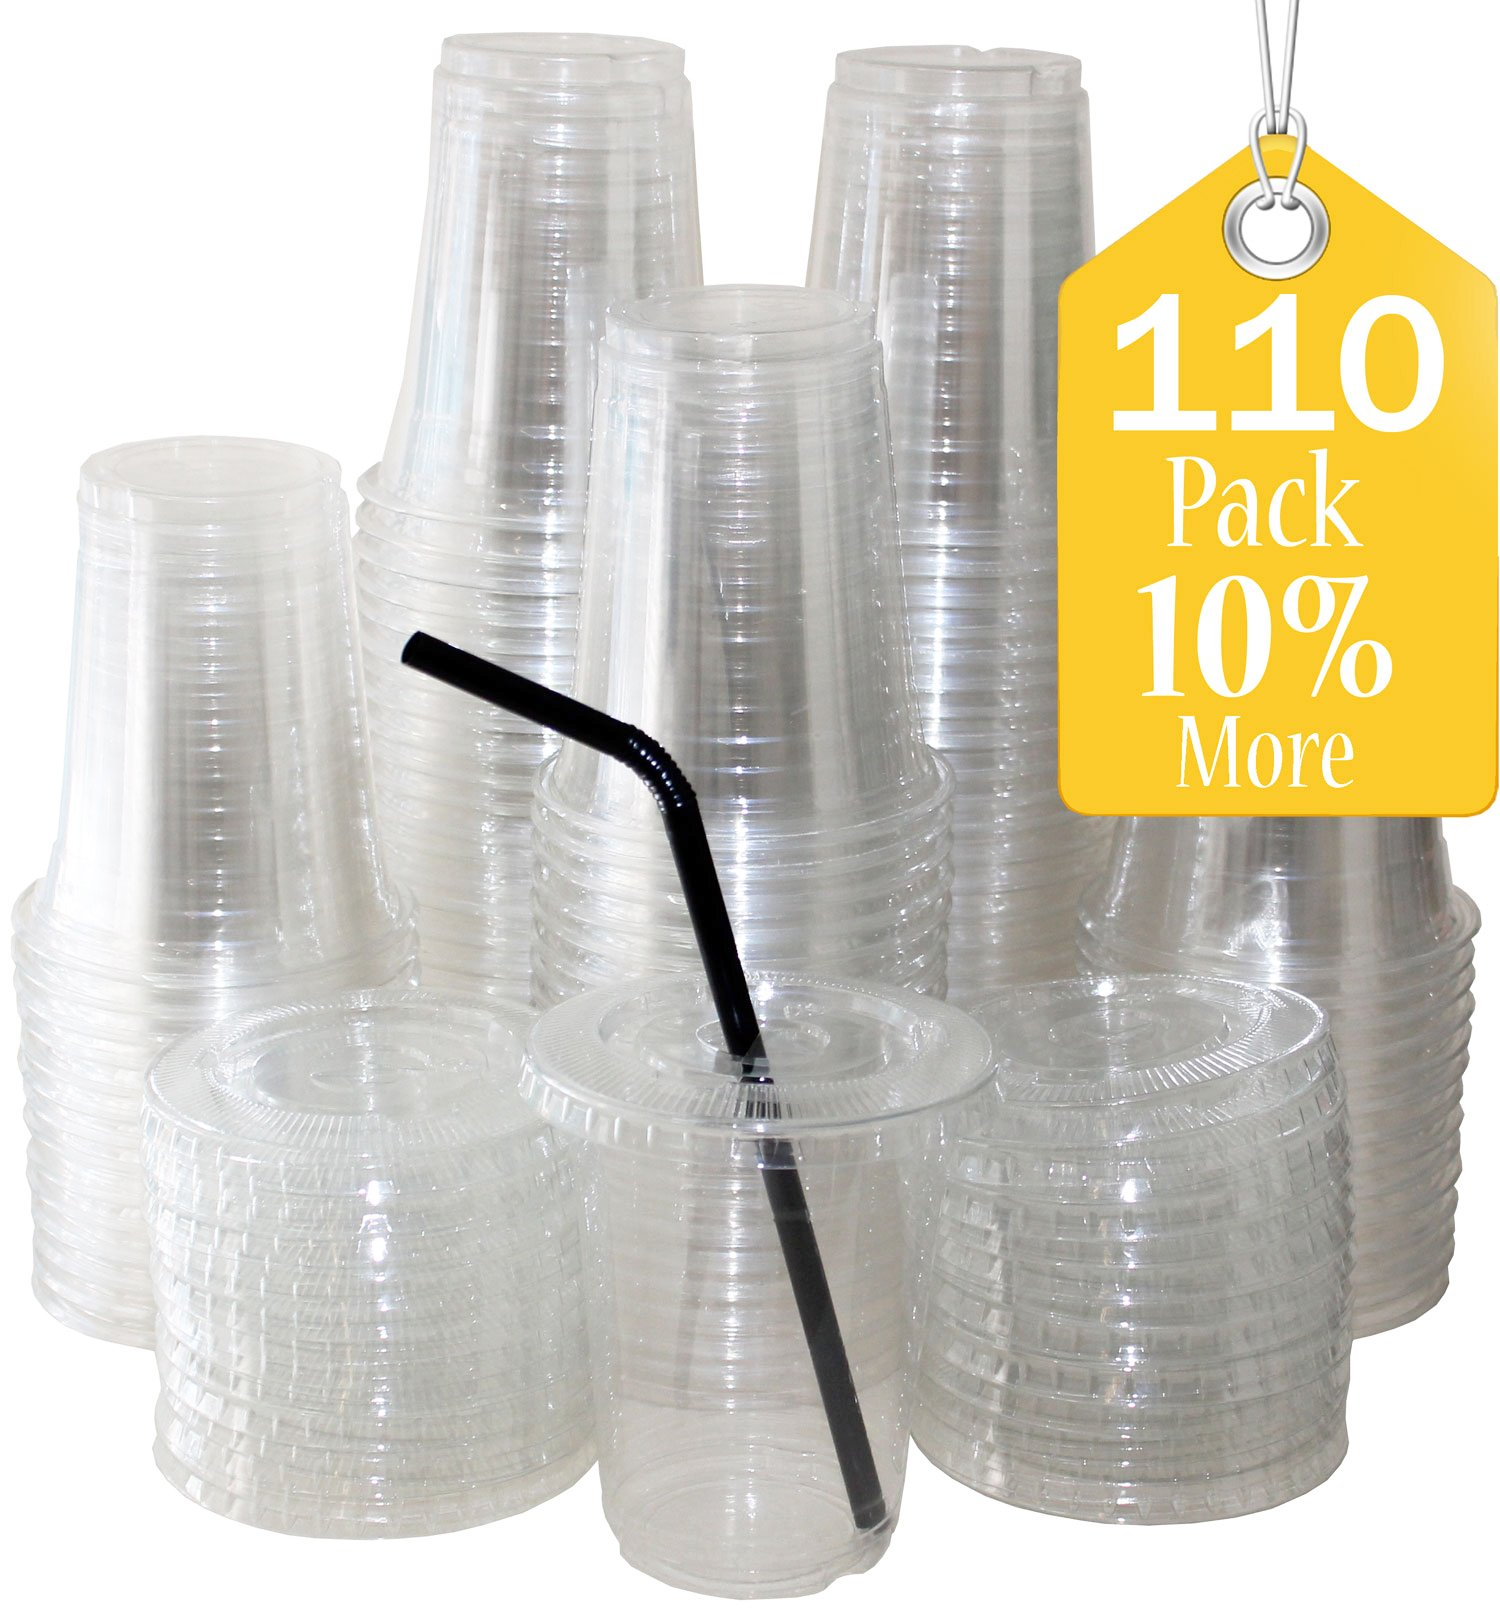 Sugarman Creations Clear Plastic Disposable Cups with Flat Lids, 12-Ounce (110 Piece) SUMMER SALE!! (Restaurant Grade)